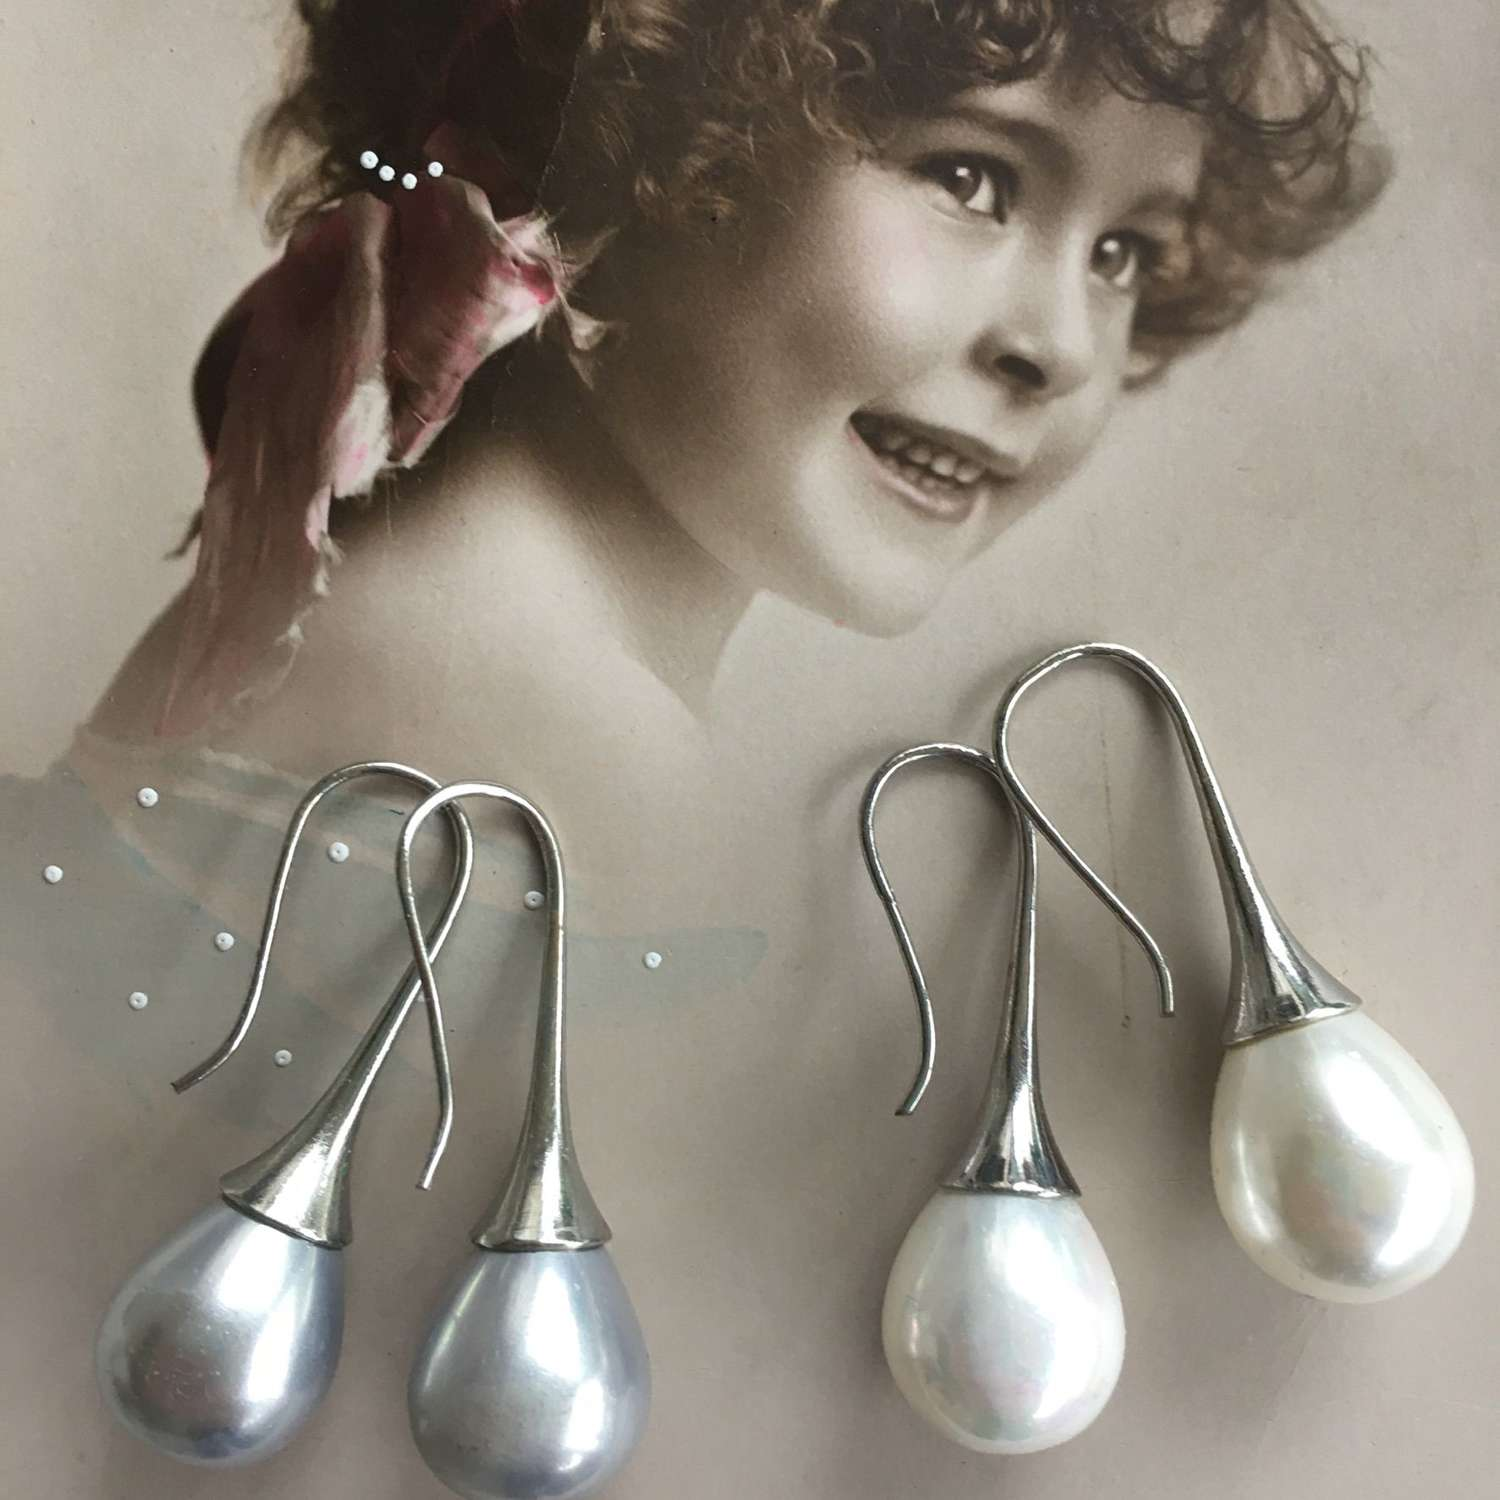 Synthetic pearl drop earrings